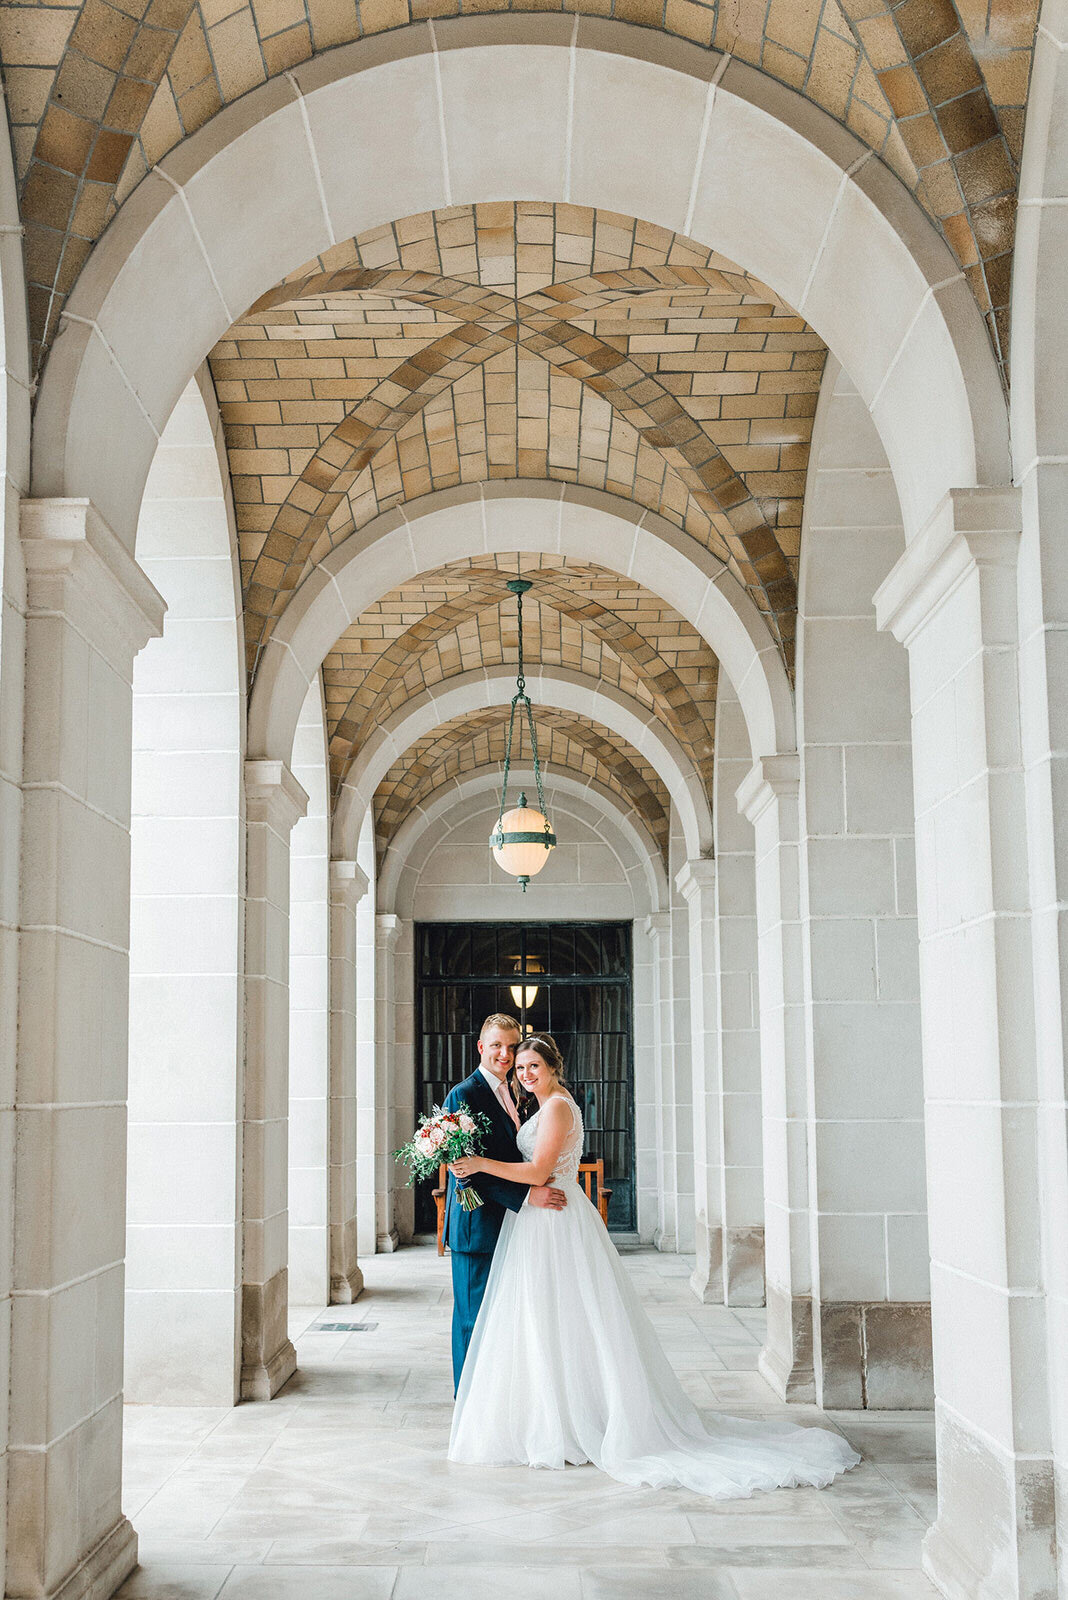 Nicole-Corrine-Nebraska-Wedding-Photographer-Lincoln